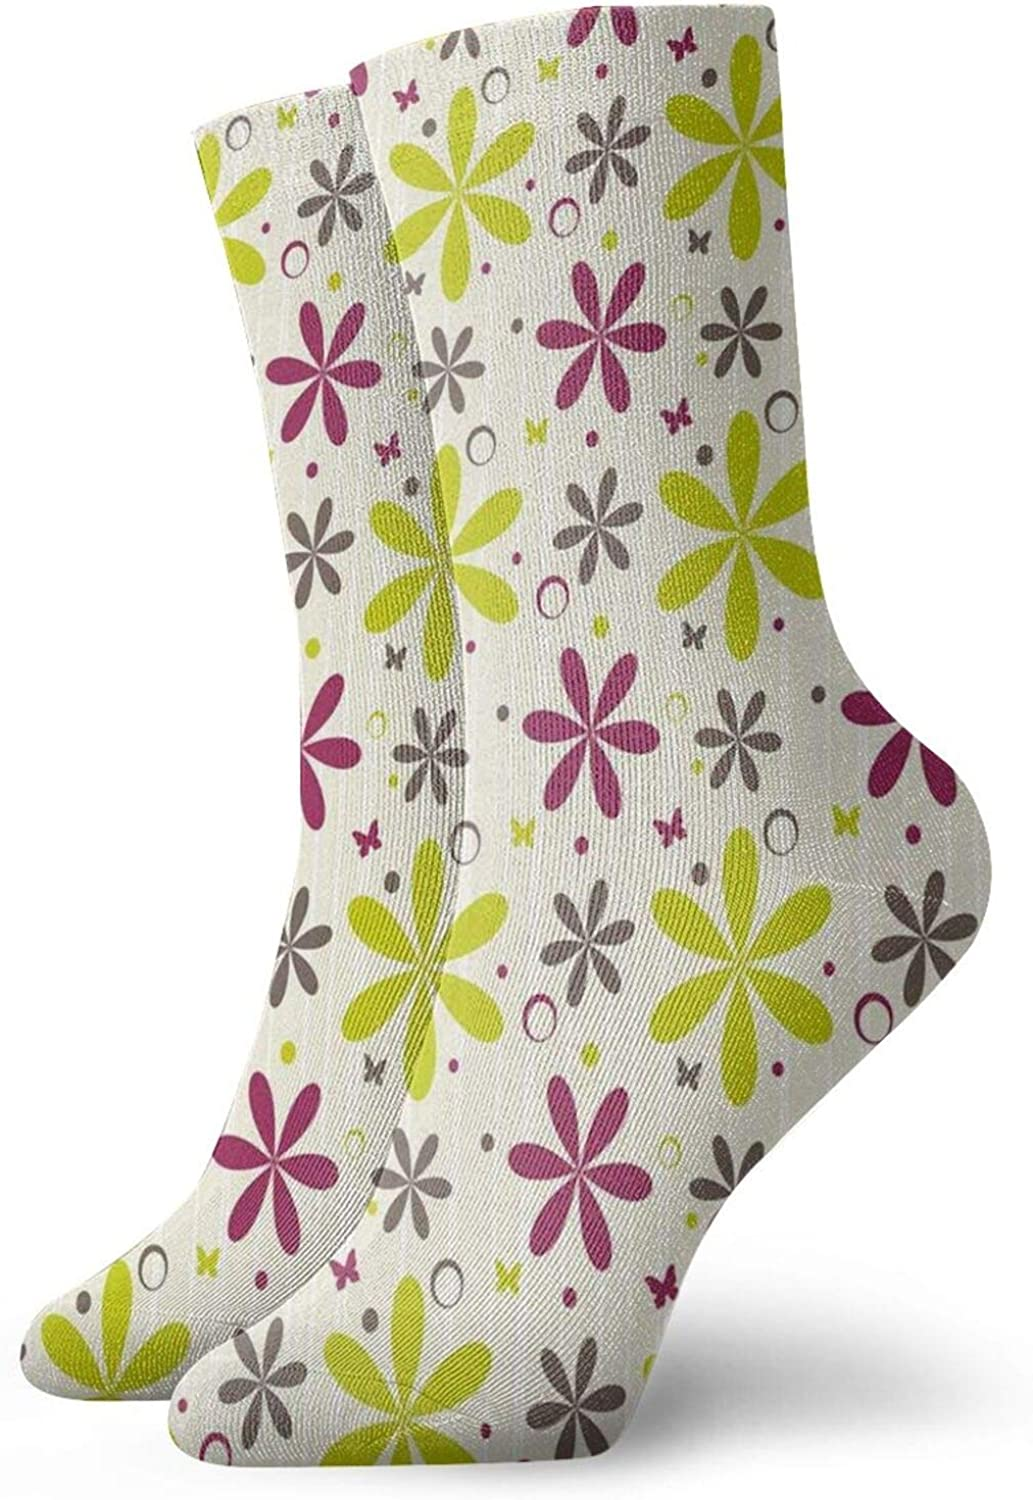 Compression High Socks,Cute Flowers Buds With Butterfly And Circ